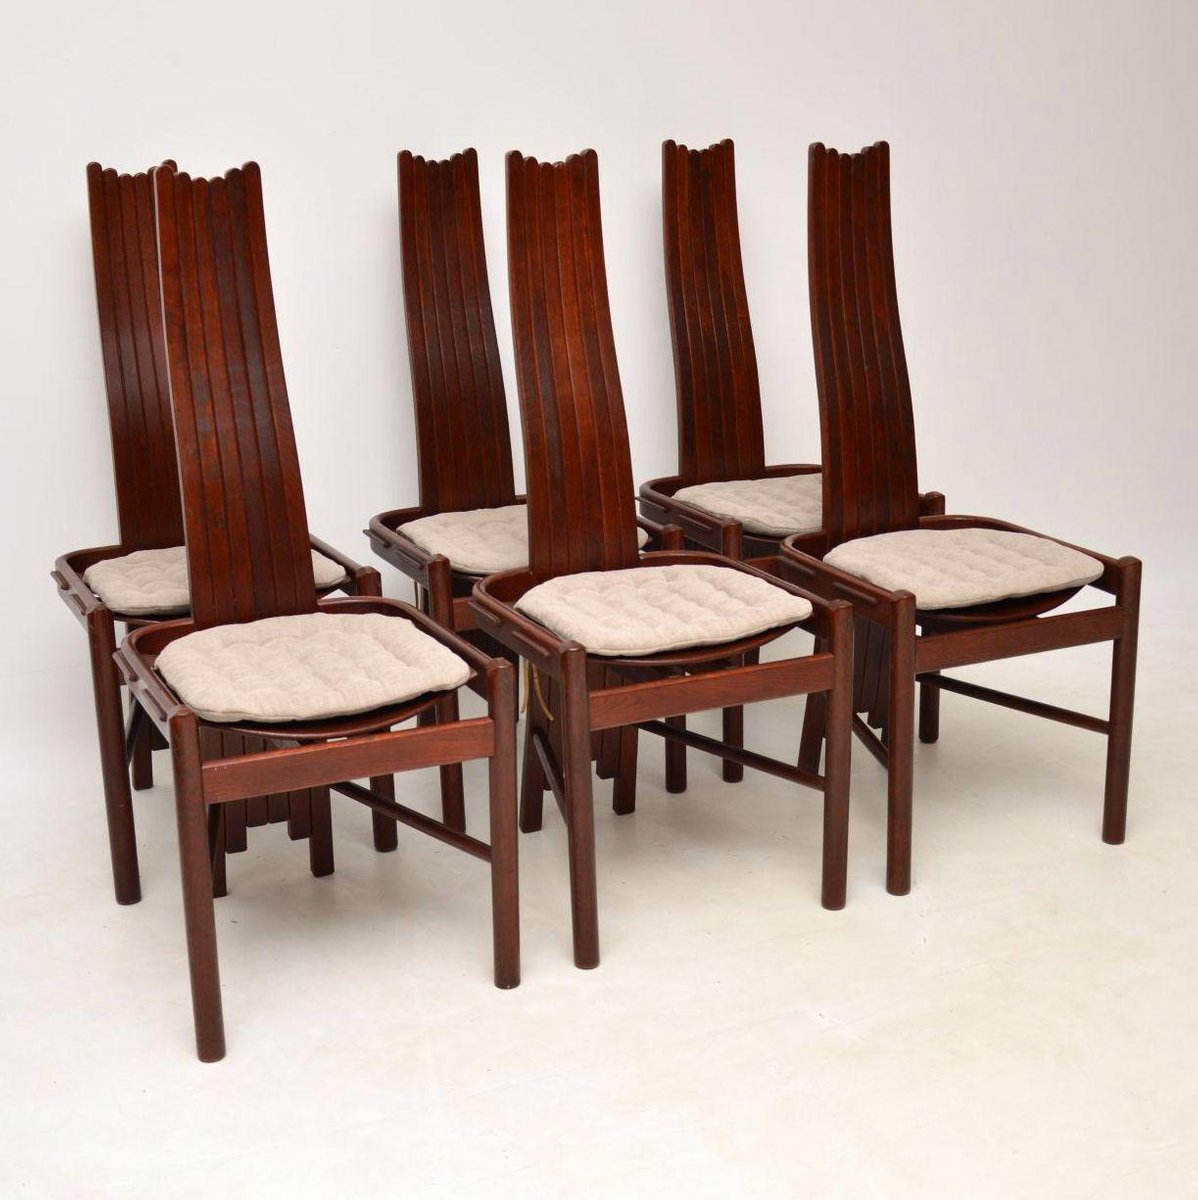 dining chairs for sale - 768×768